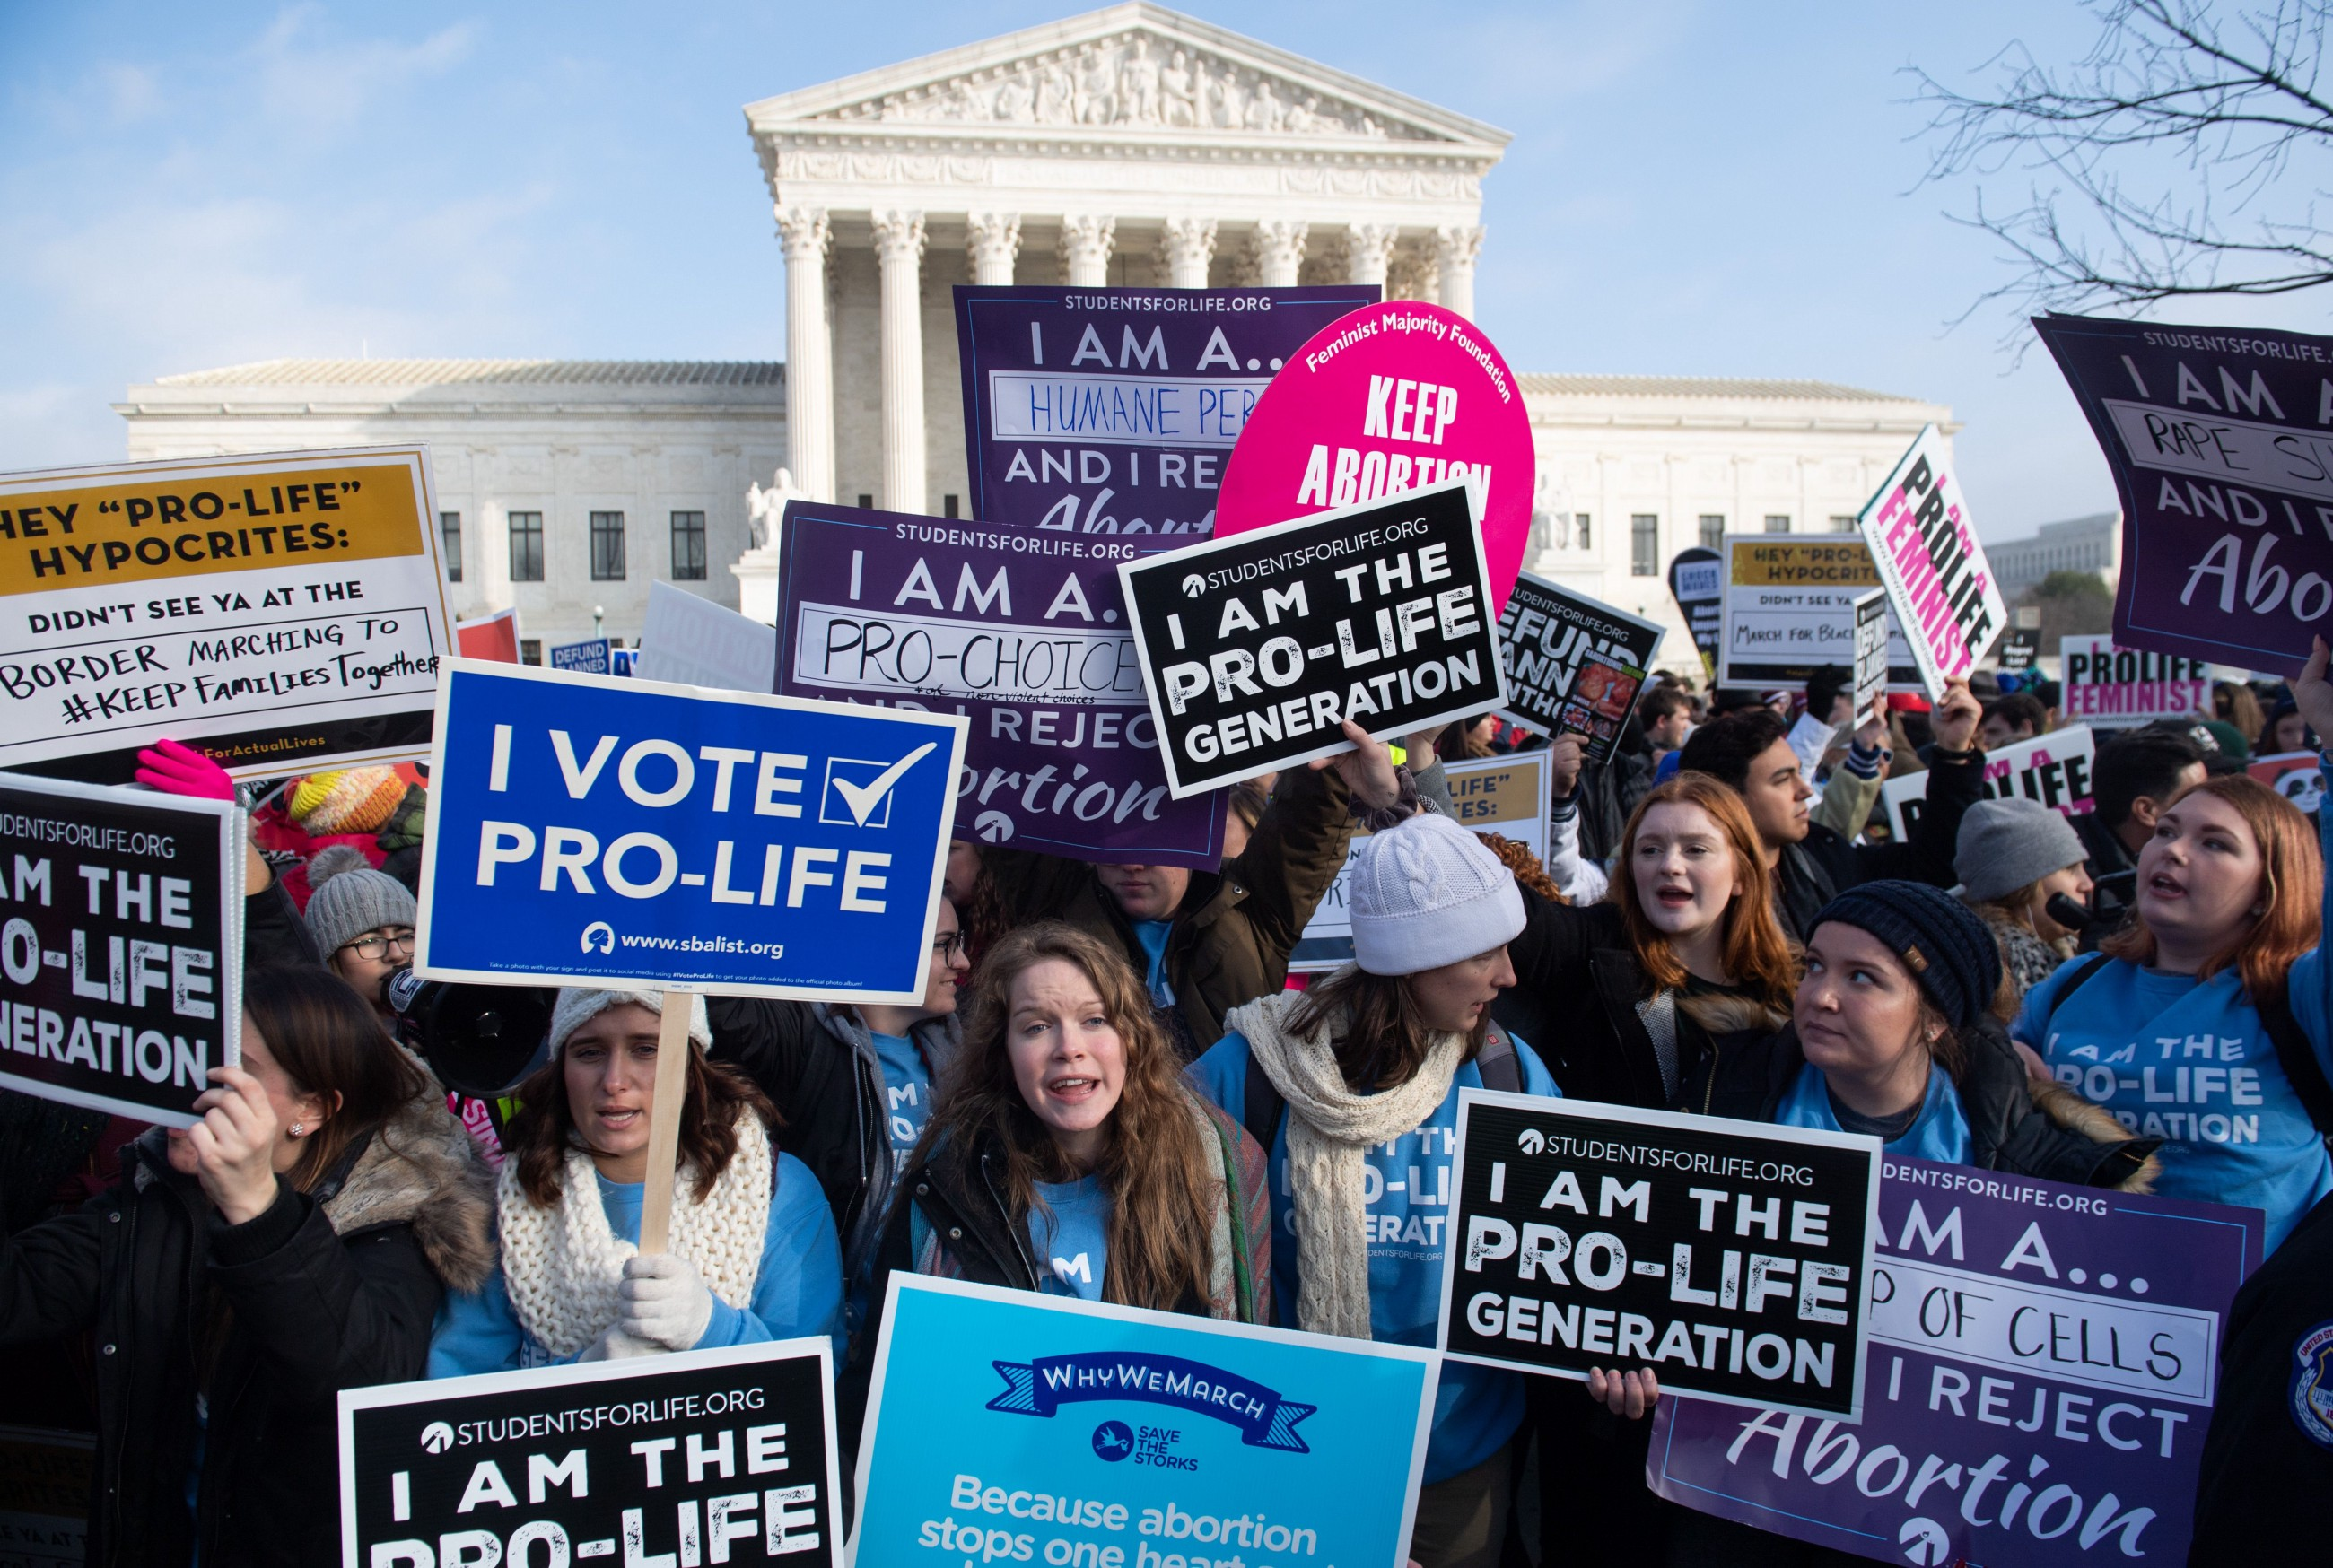 Why I Left the Pro-Life Movement